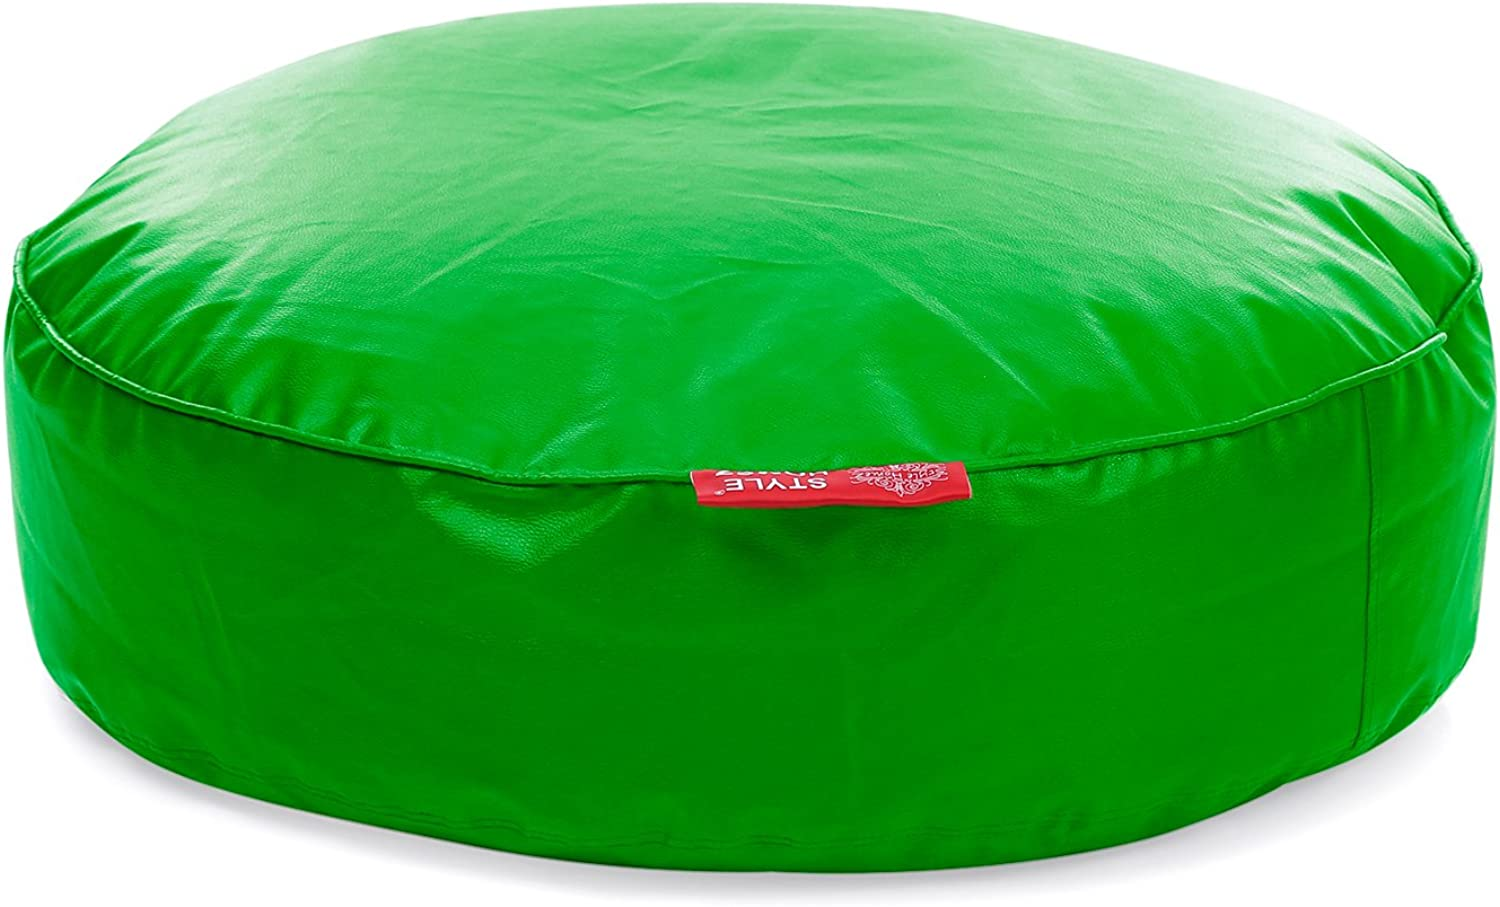 Style Homez Classic Round Floor Cushion XXL size Green color Cover Only